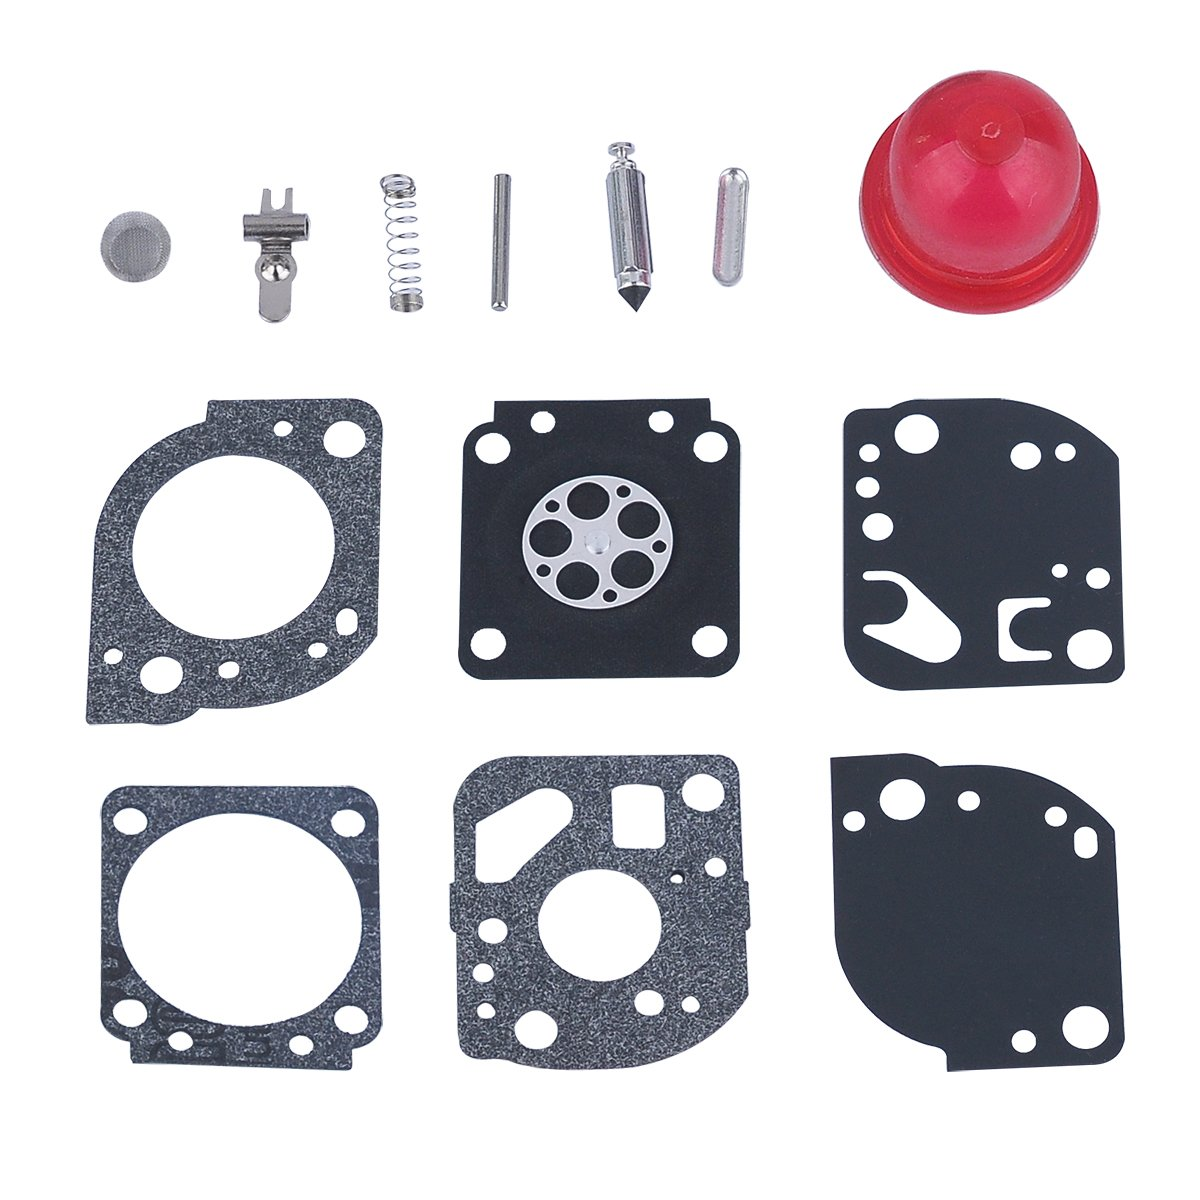 HIPA RB-117 Carburetor Repair Kits for ZAMA C1U-W19 Poulan Craftman 530071811 PP025 PP258TP PP25E PP325 SM705 P4500 P4500F Gas Trimmer